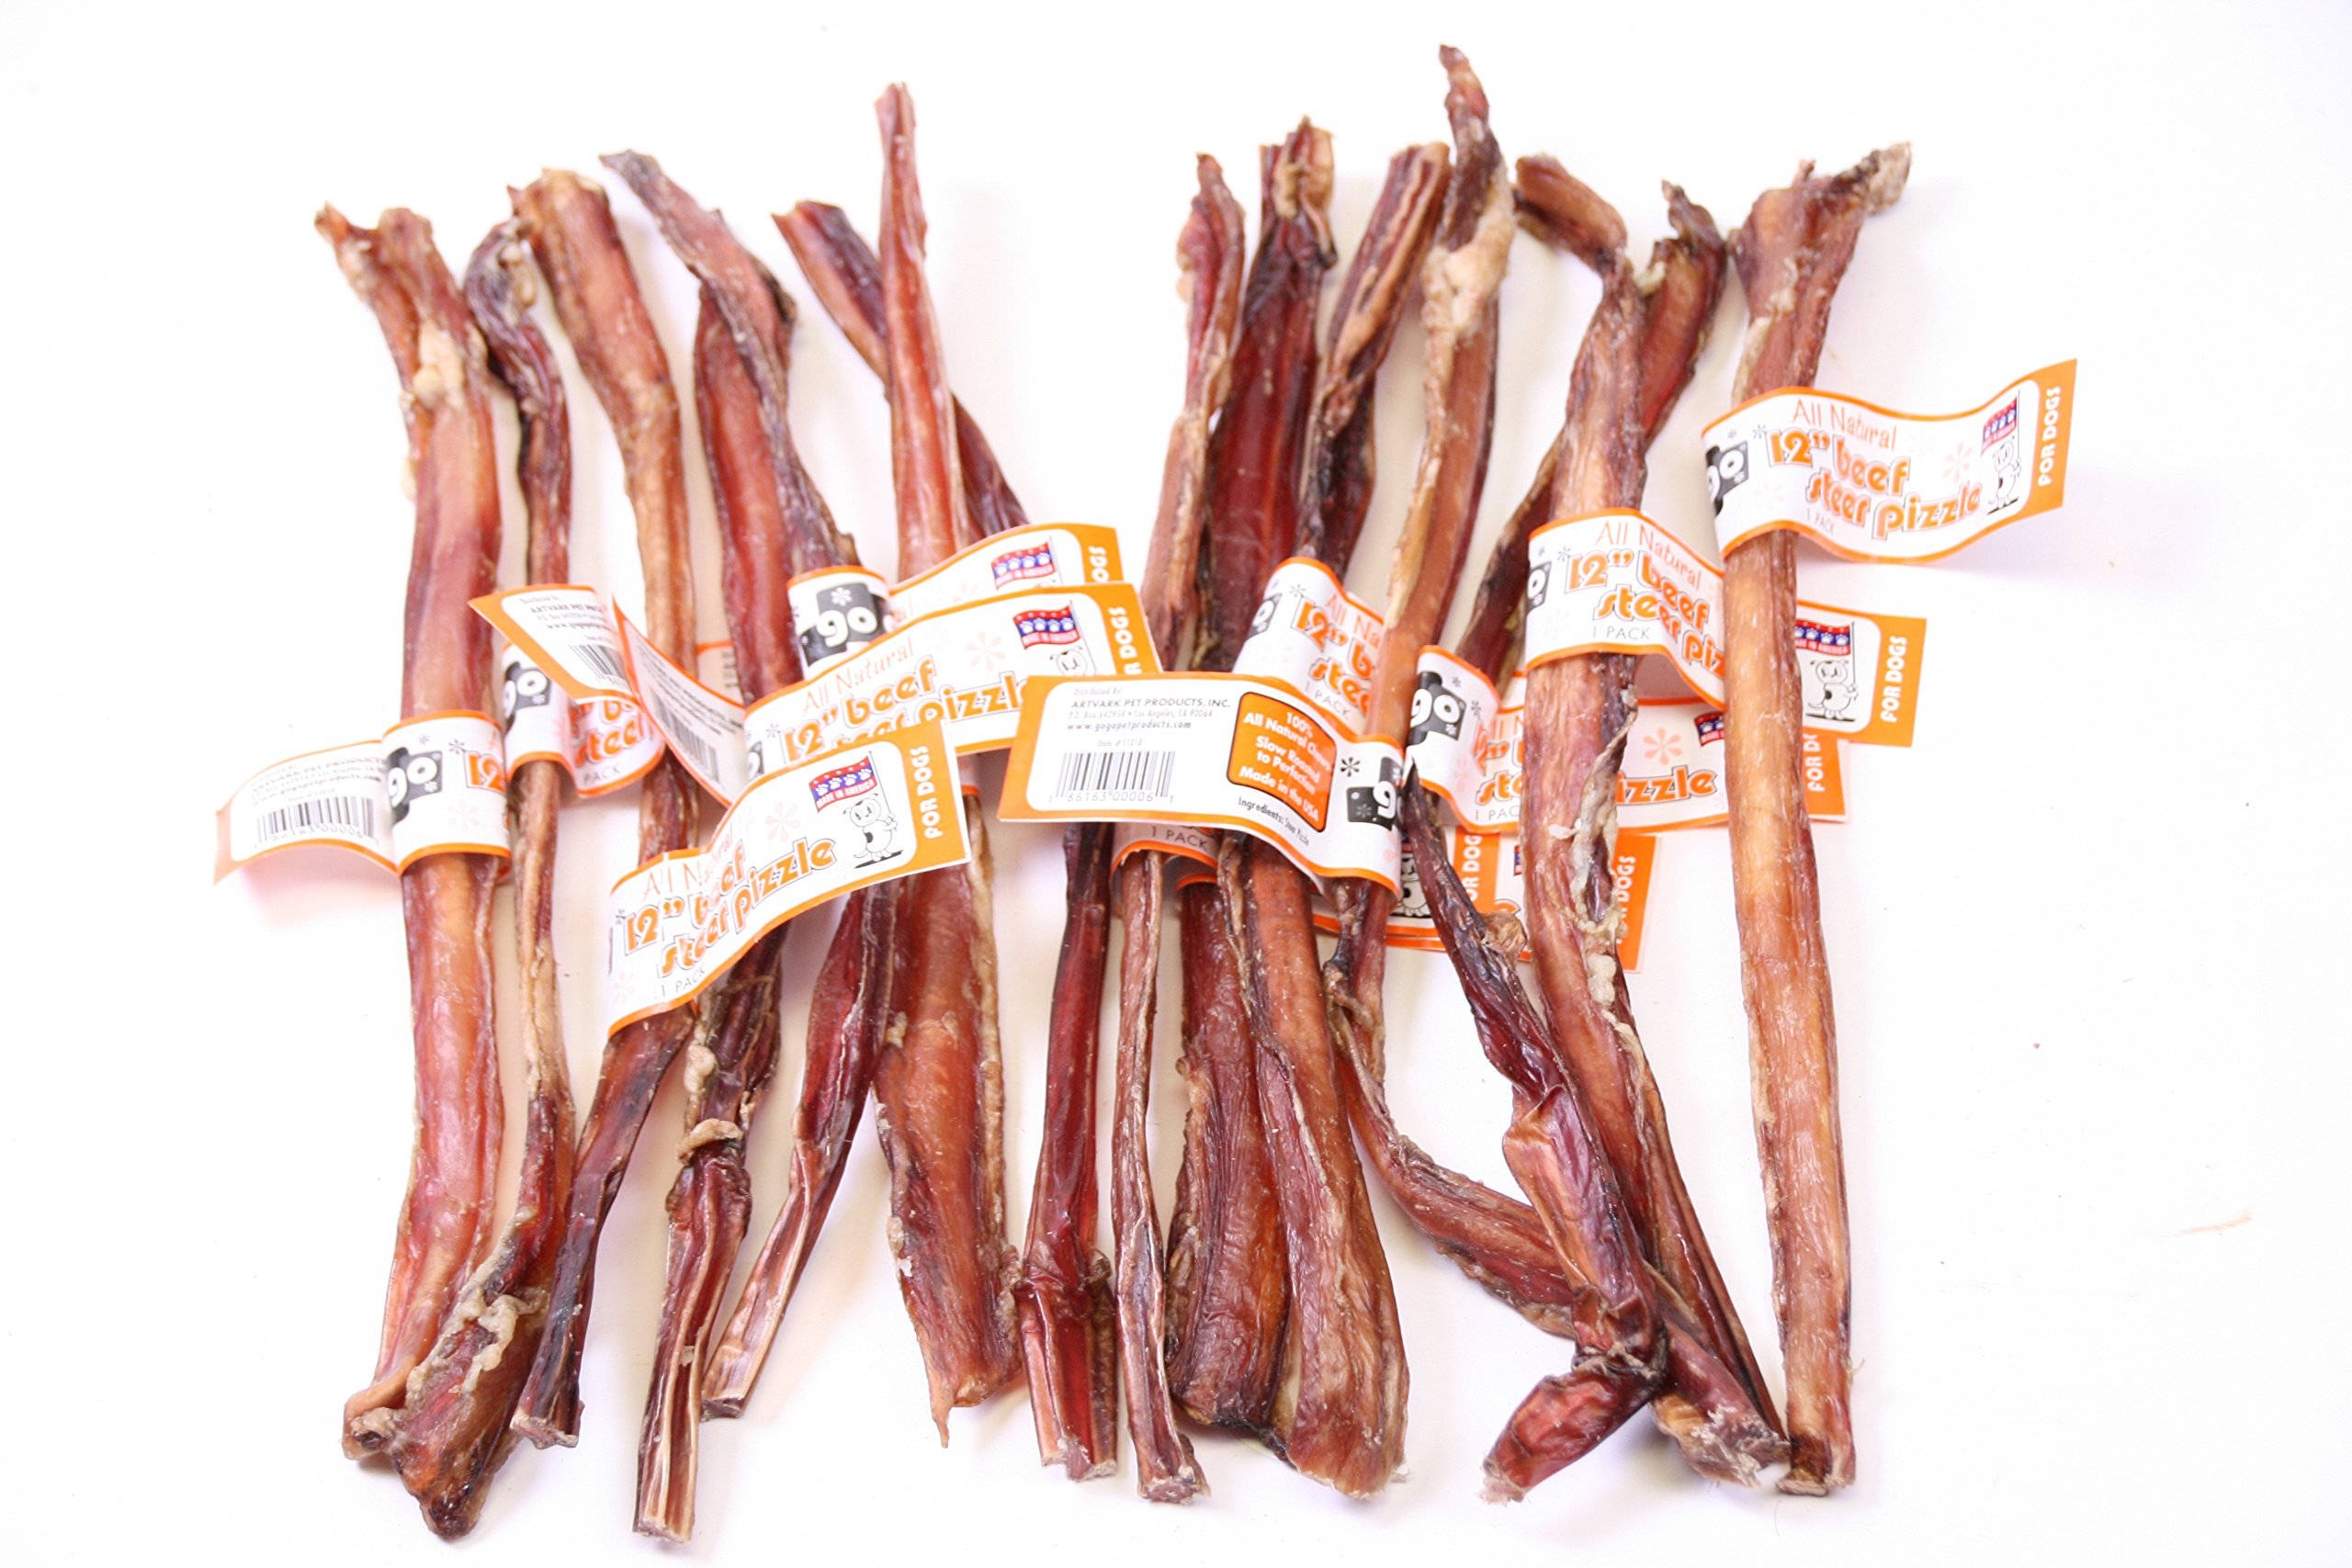 12 Inch USA Made Beef Steer Pizzle Sticks, 50 Pack By GoGo Pet Products… by GoGo Pet Products (Image #4)